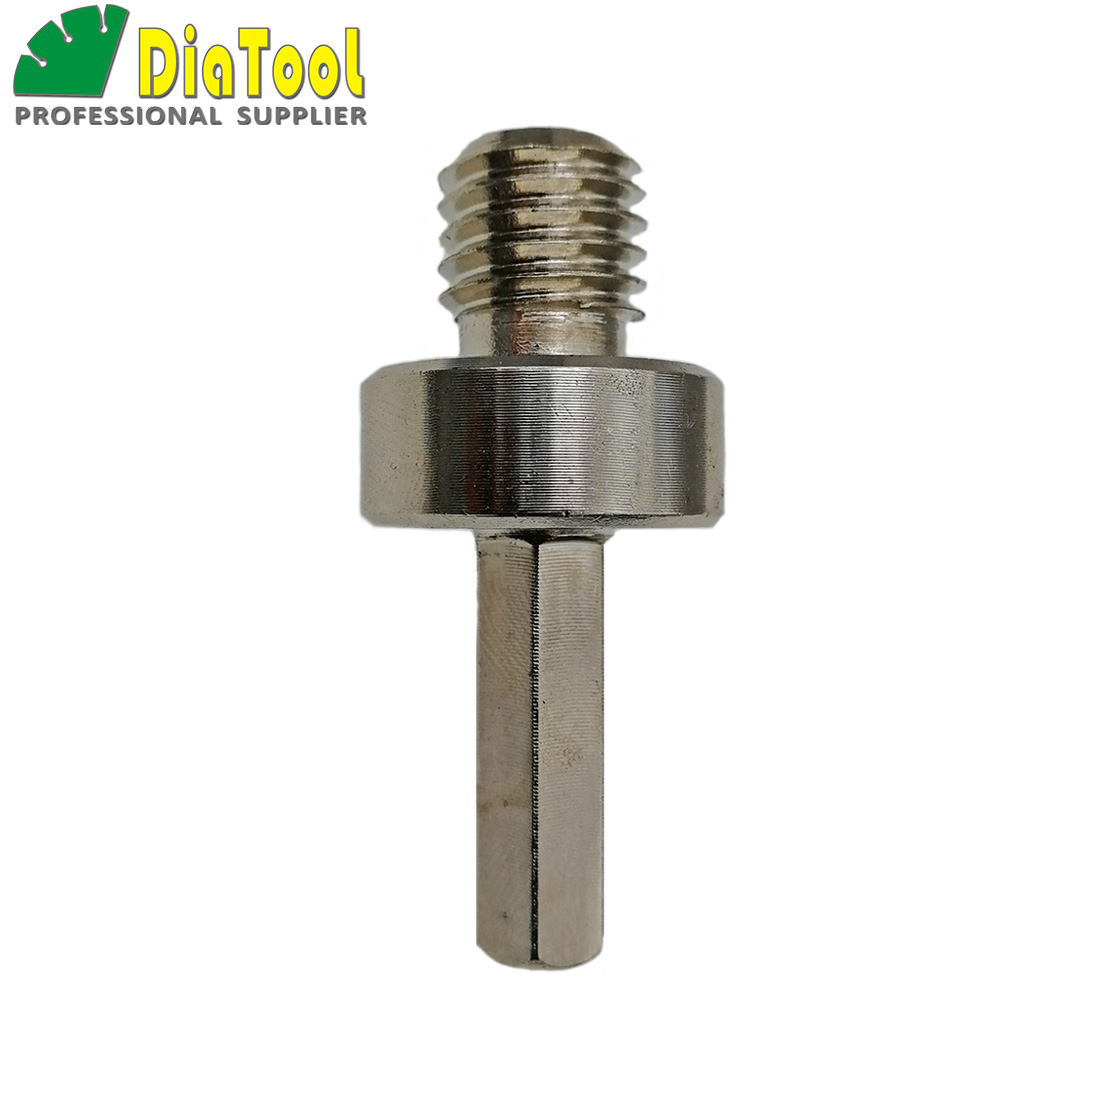 DIATOOL 1pc Adapter M14 Male Thread to 3/8